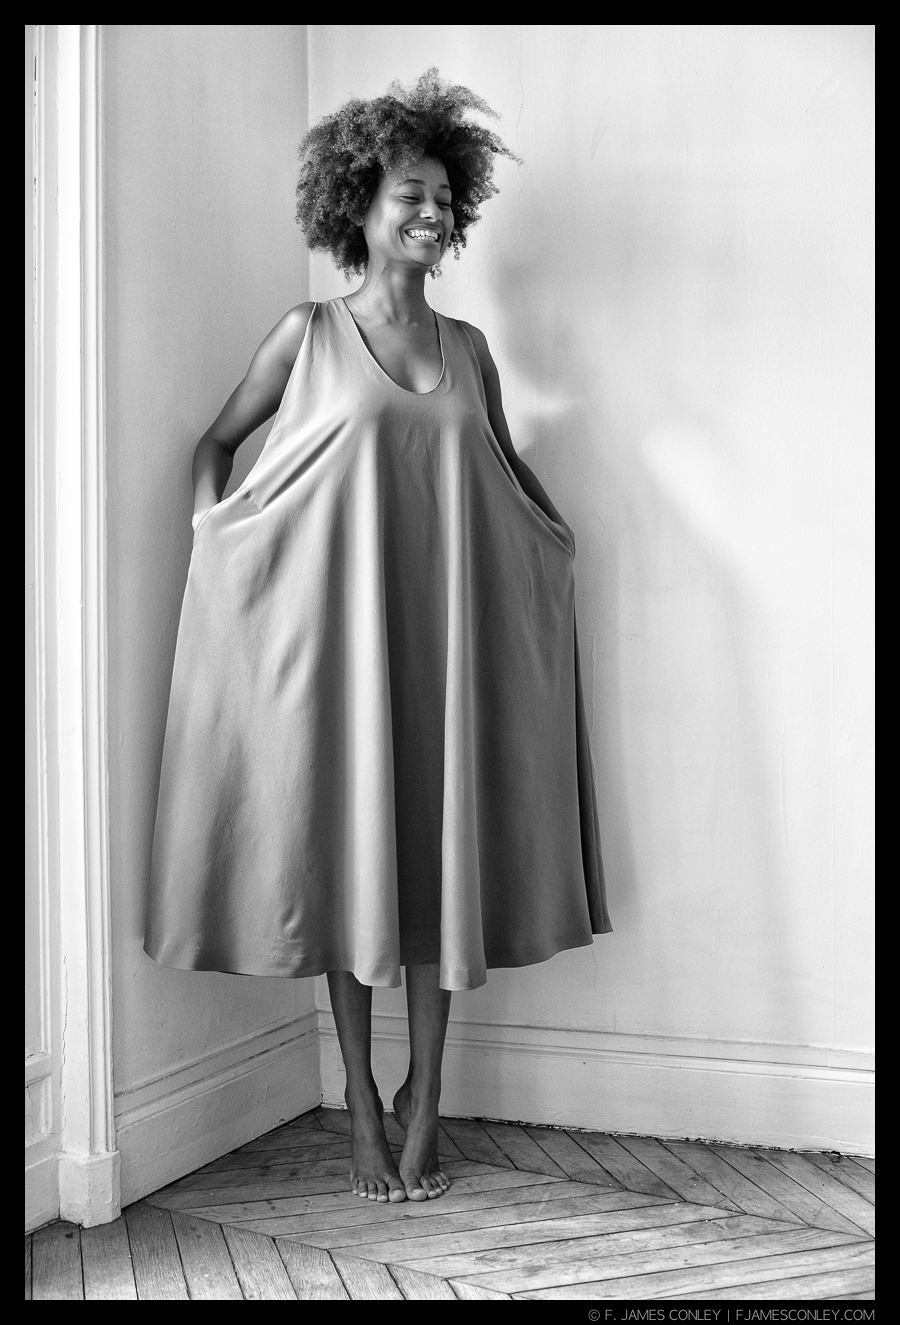 Working with  CHV Design  in Paris, the designer's primary concept with this dress was its drape—the way the fabric hangs and moves.Accordingly, the images about this dress emphasize its draping with movement.